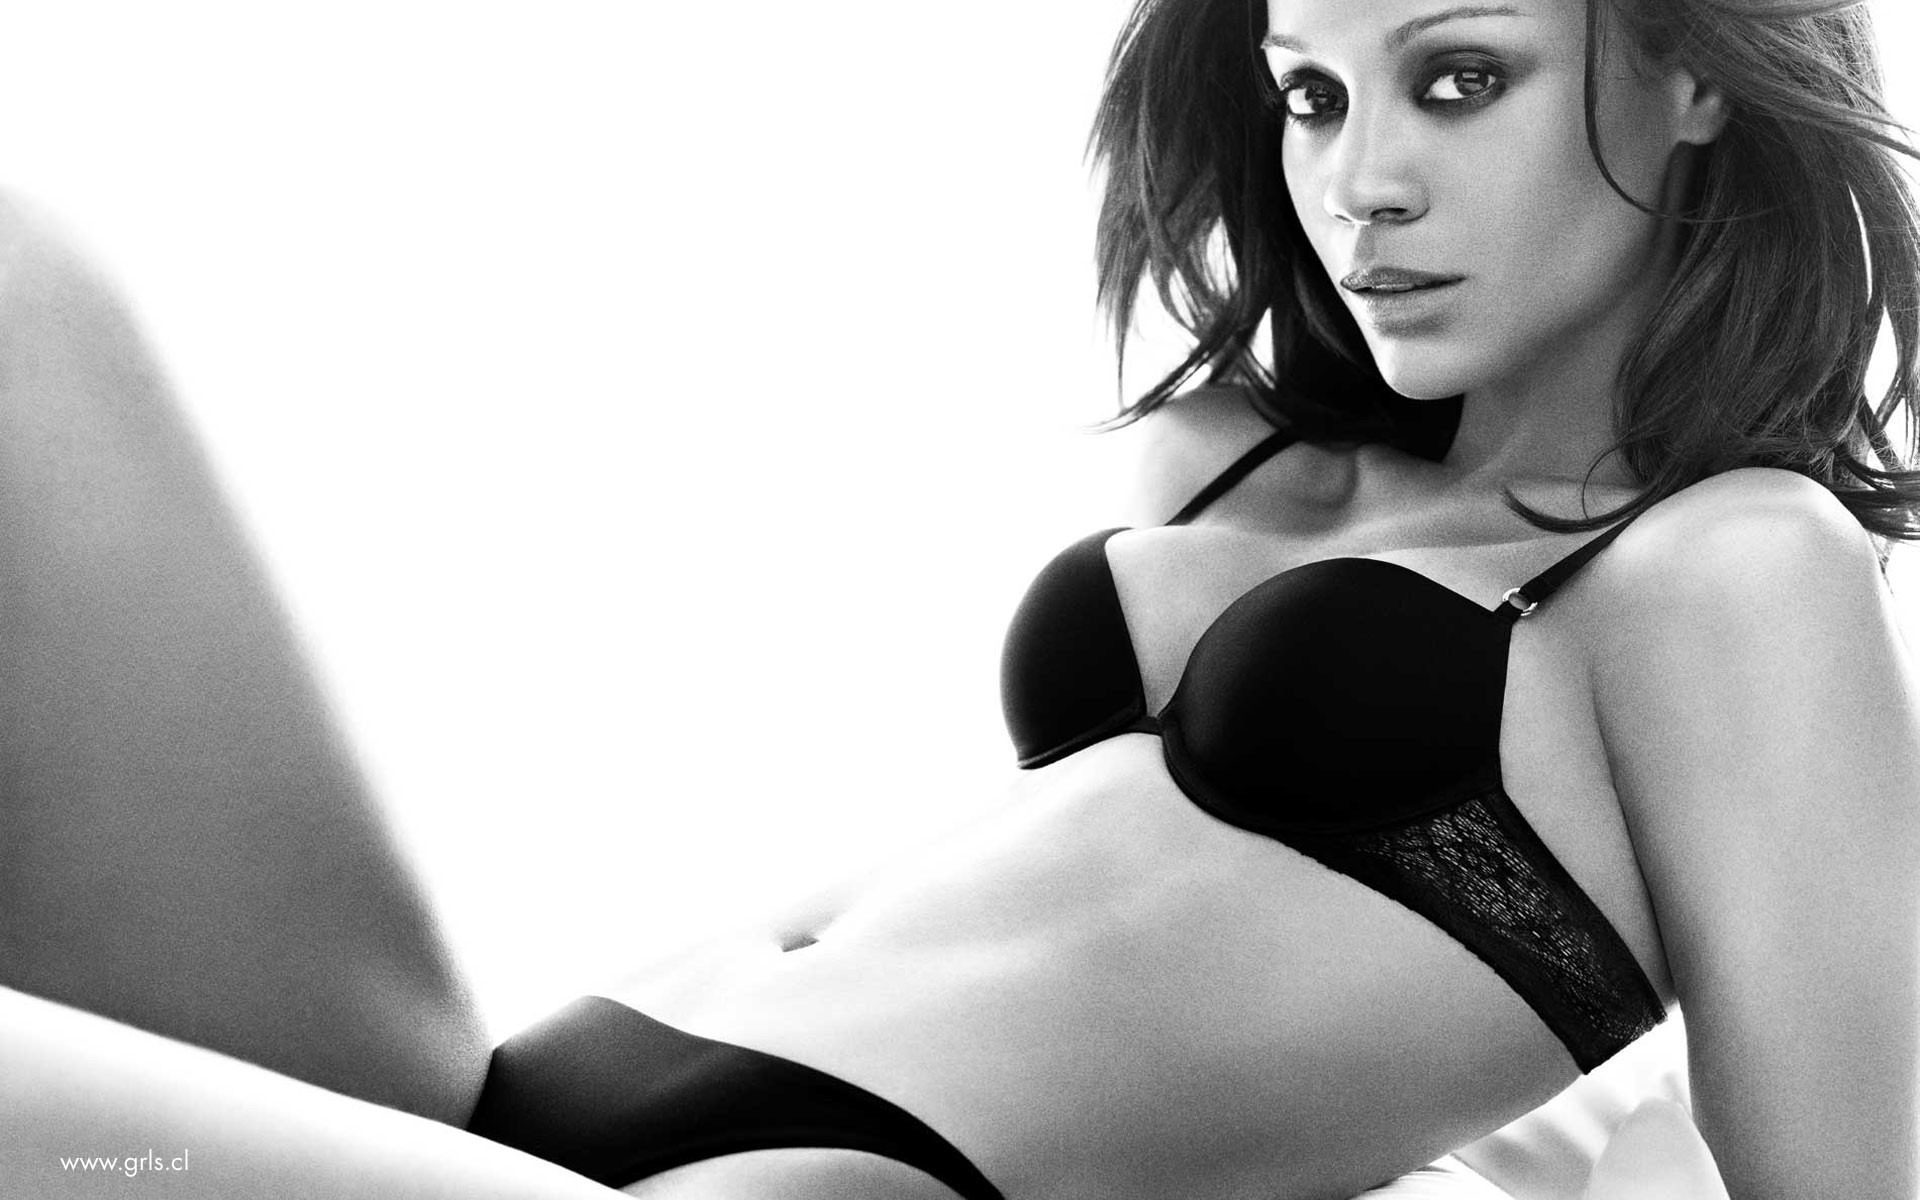 woman zoe saldana monochrome HD Wallpaper